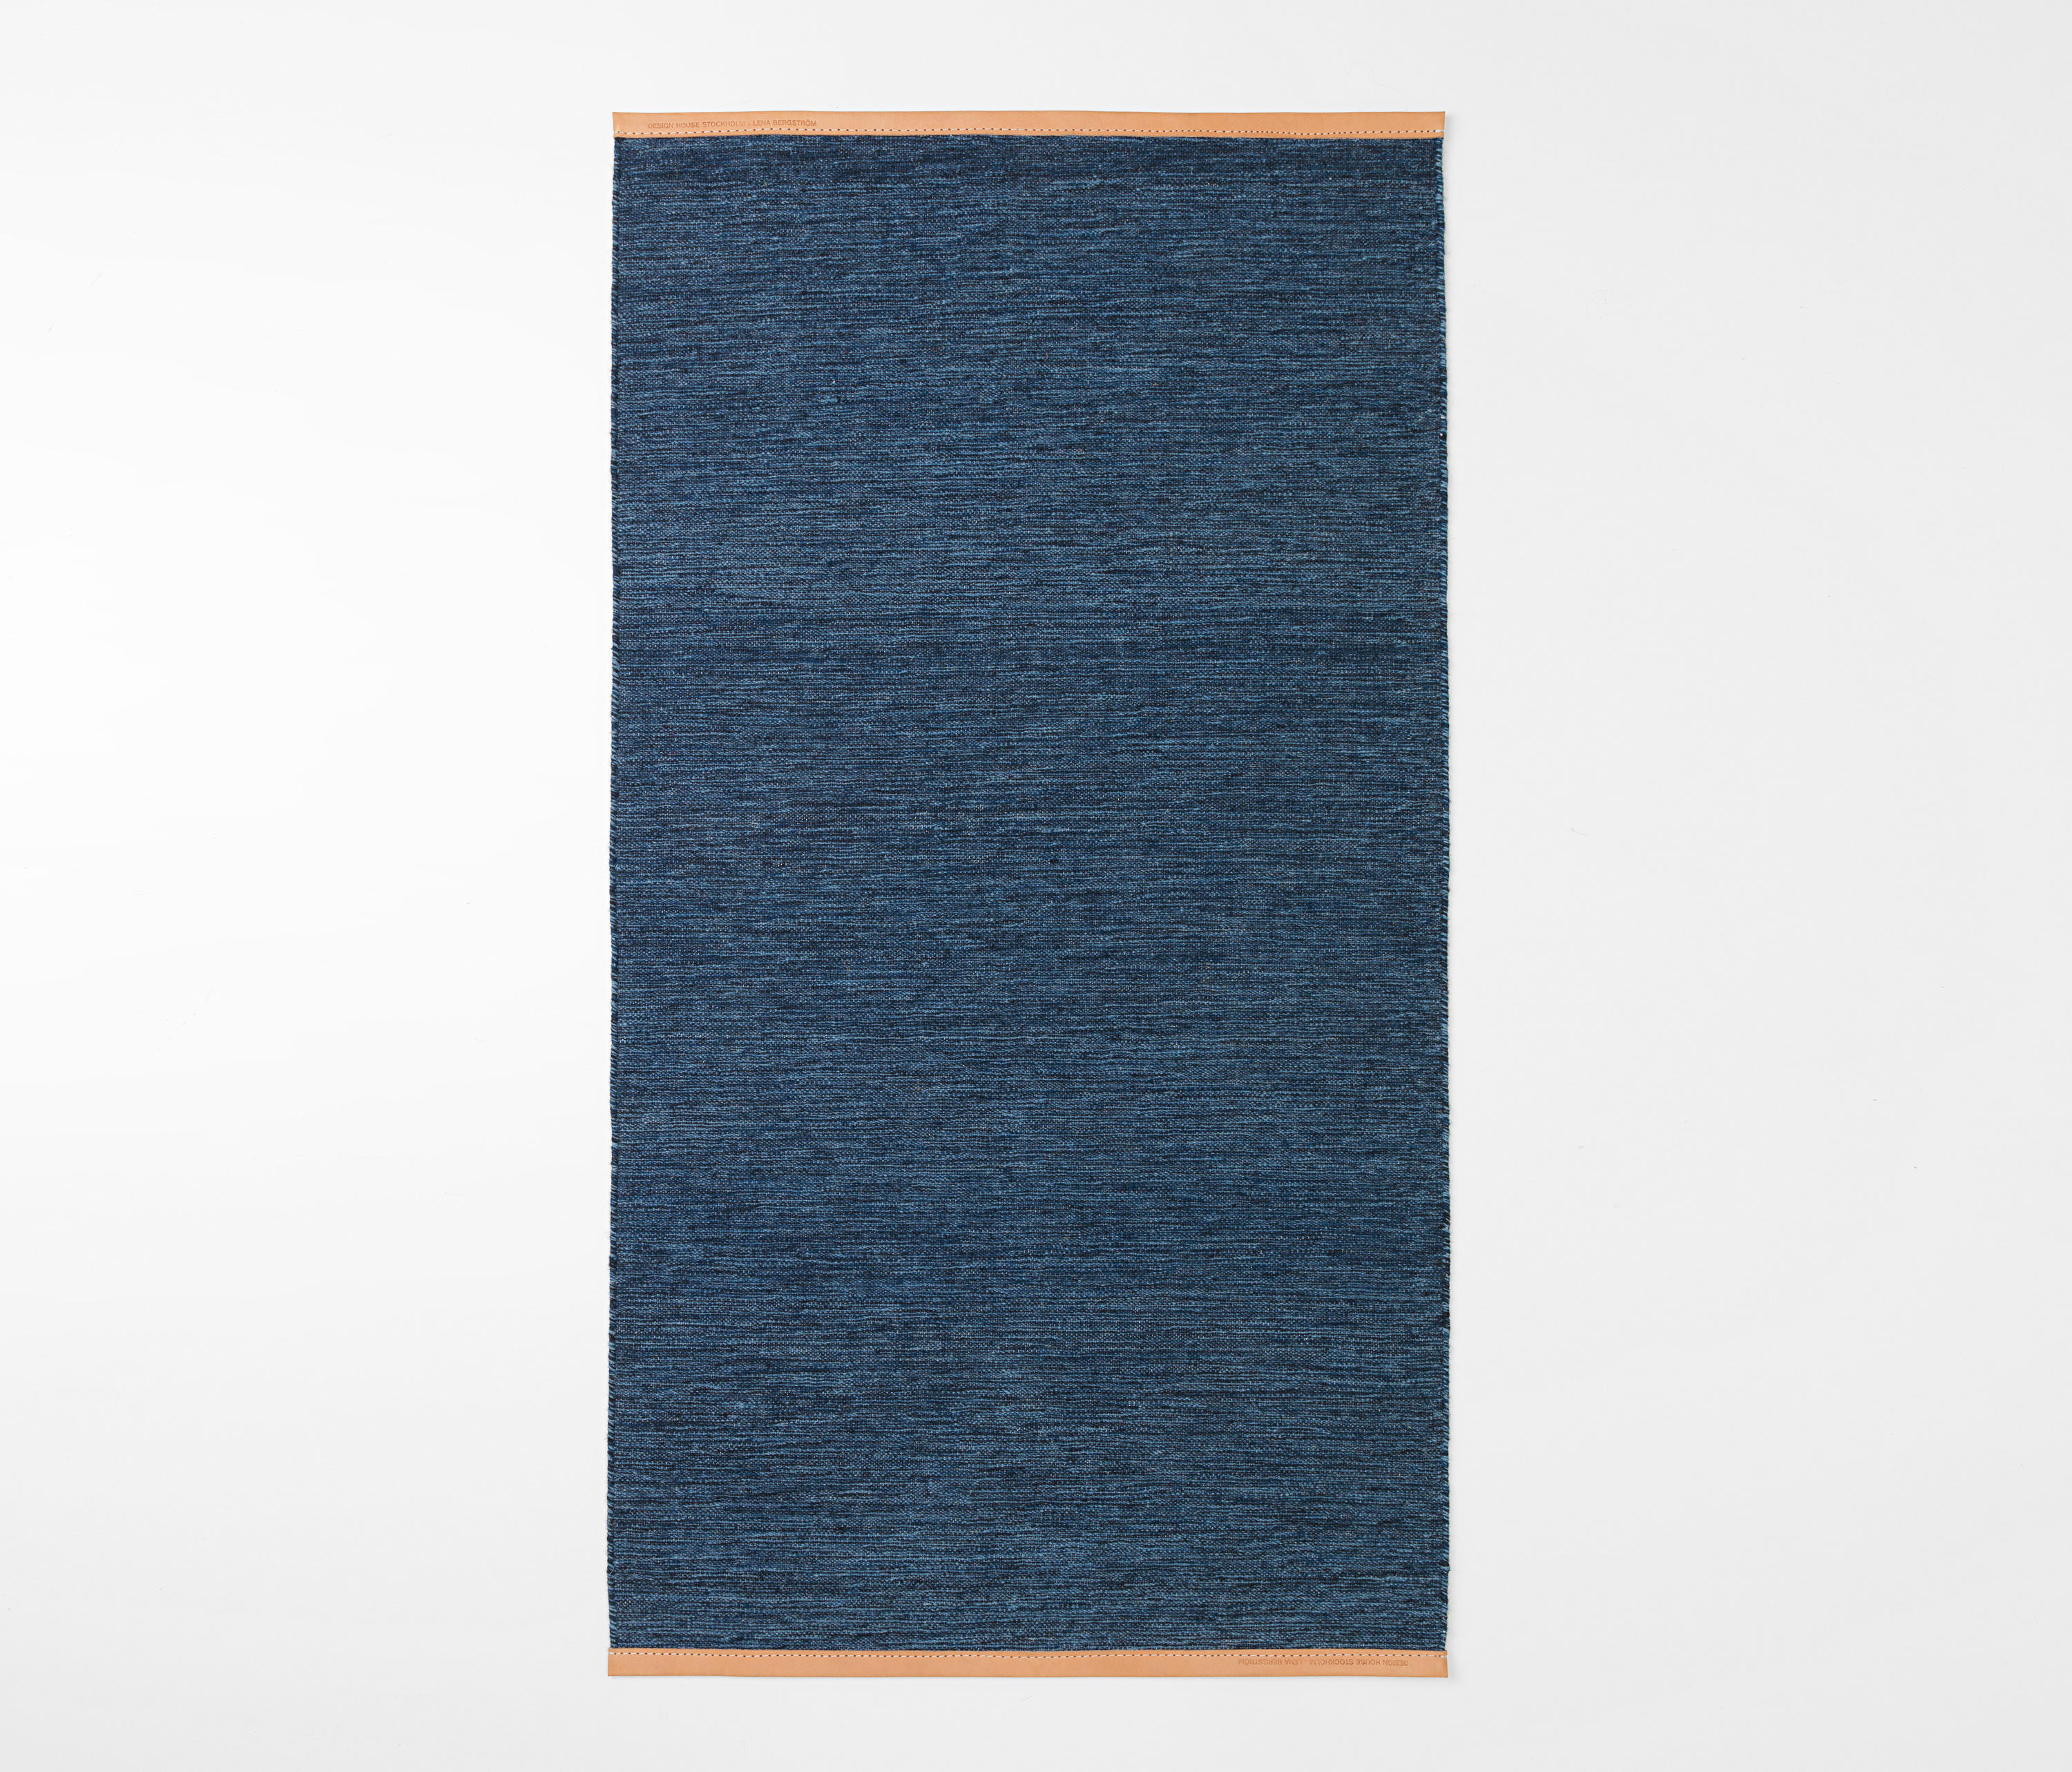 Breathtaking Rug By Design Contemporary Simple